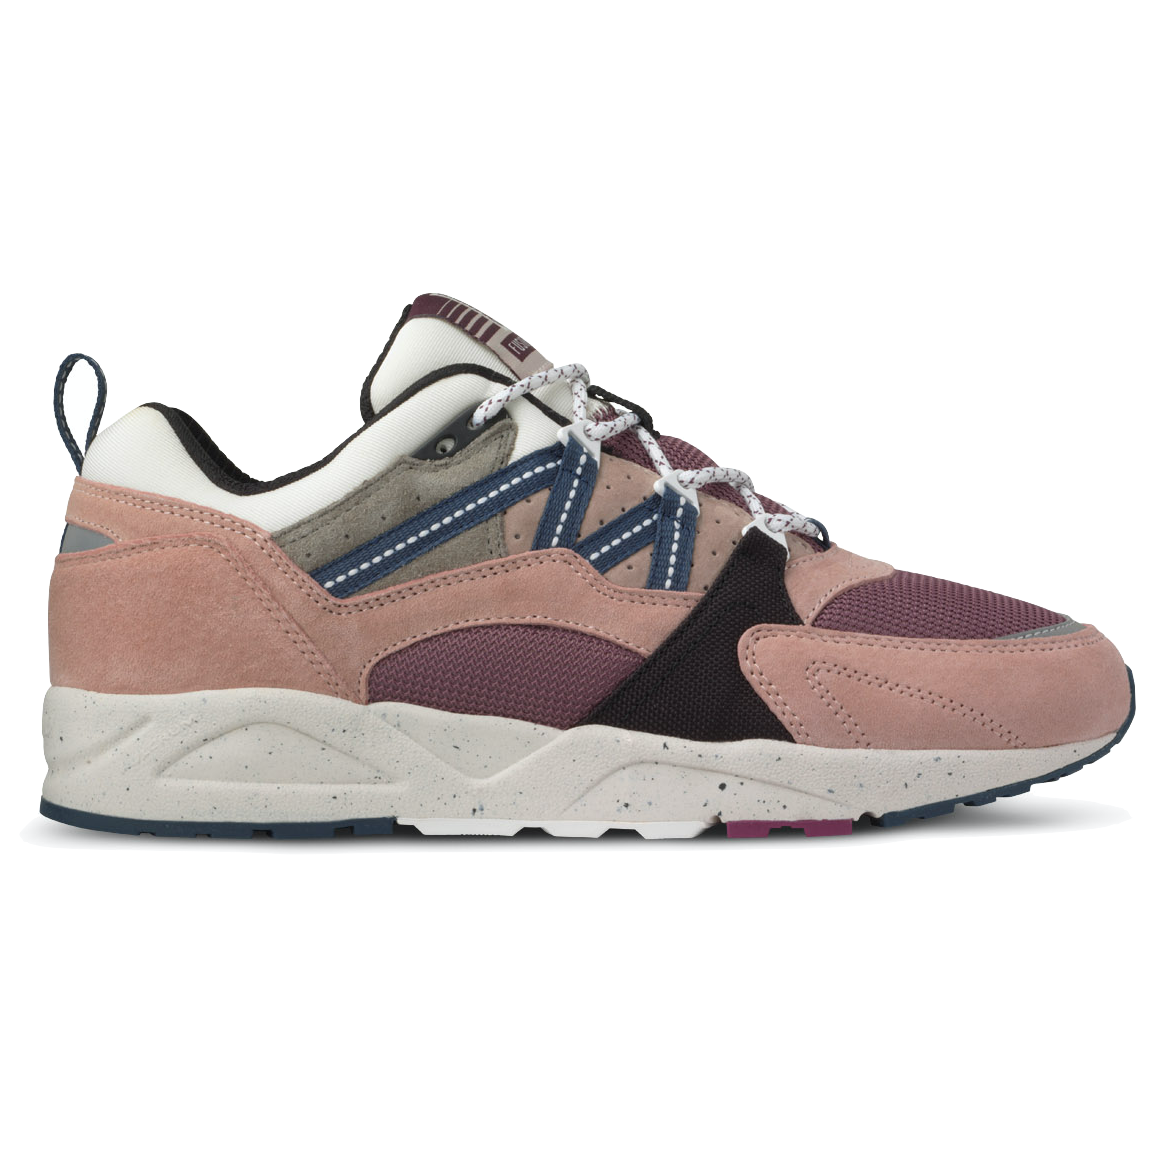 karhu-fusion-2-0-color-of-mood-misty-rose-reflecting-pond-femme-side-1